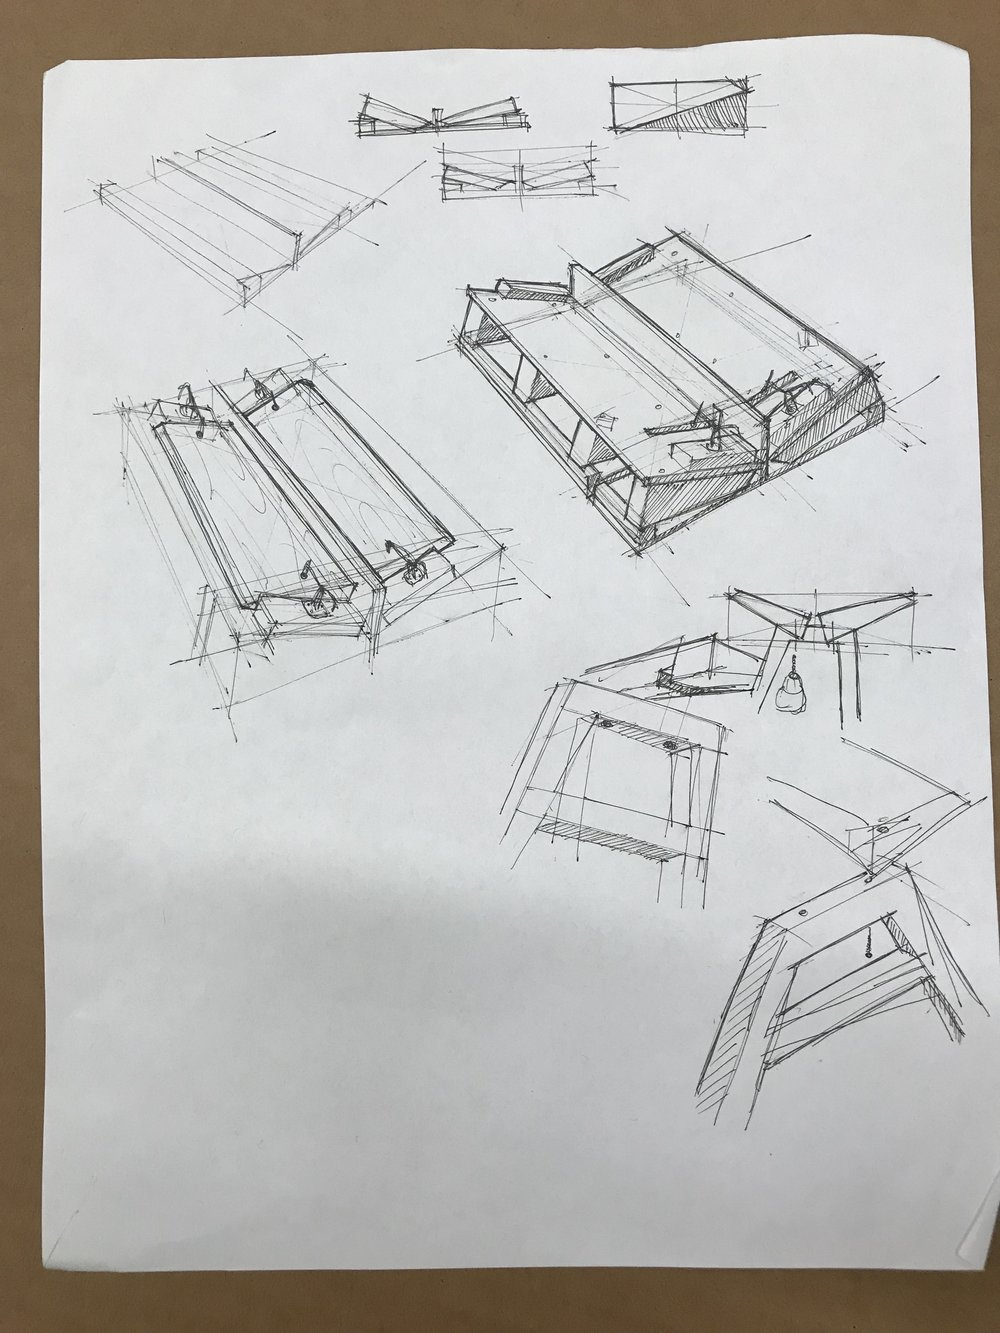 This final jig was complicated in that I needed to make a cut into the seats that aligned 2 pieces, remained level, but also angled the seating pieces upwards so that the seat cups the person sitting in it rather than being a flat surface to sit on.